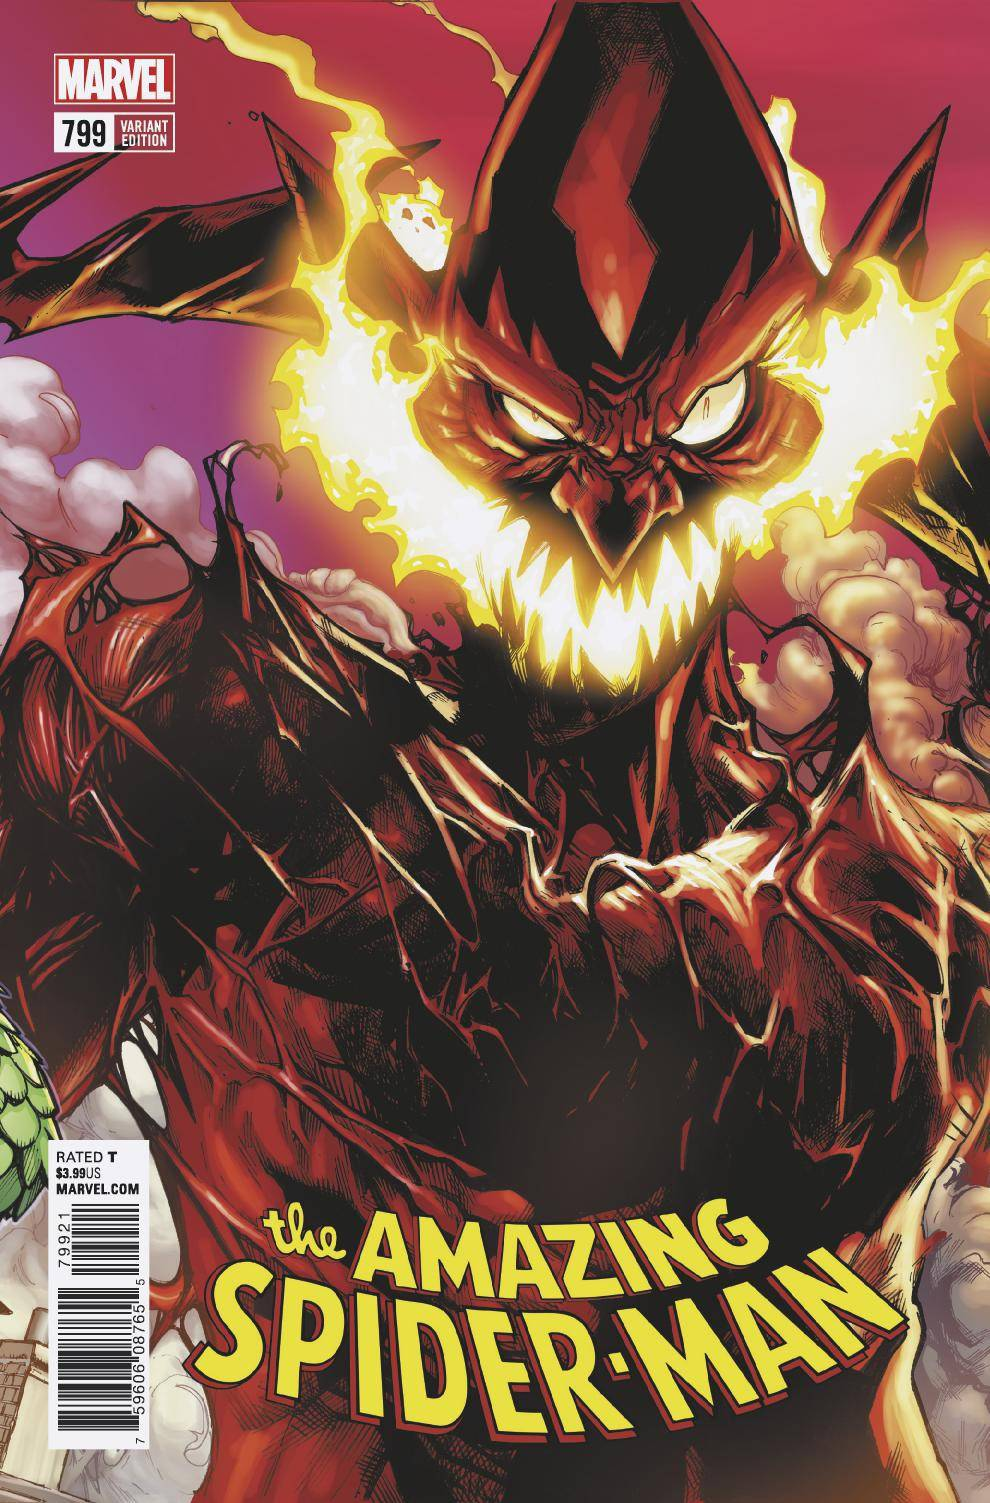 04/18/2018 AMAZING SPIDER-MAN #799 RAMOS CONNECTING VARIANT